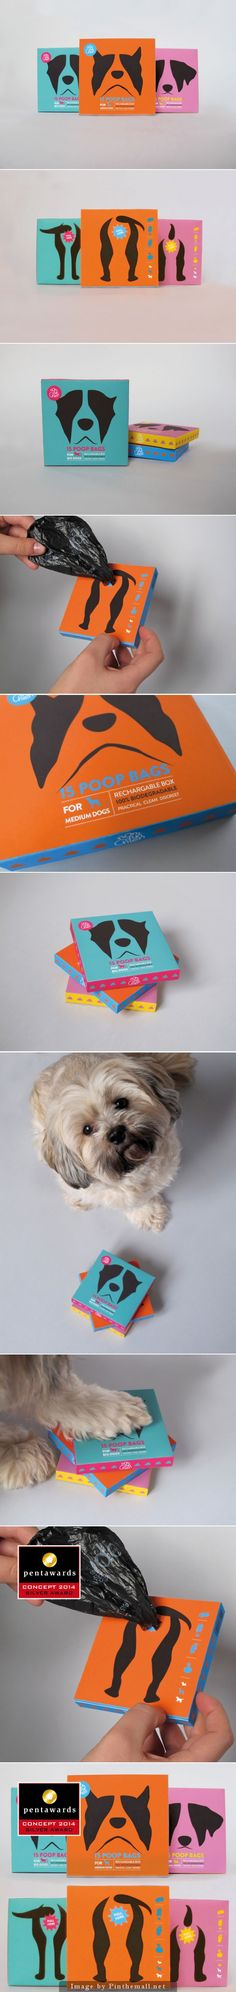 Nom d'un chien (Concept) by Marine Bacot AKA Hilarious Poop Bags Packaging Awards, Clever Packaging, Innovative Packaging, Brand Packaging, Animal Design, Dog Design, Pet Branding, Green Label, Dog Logo